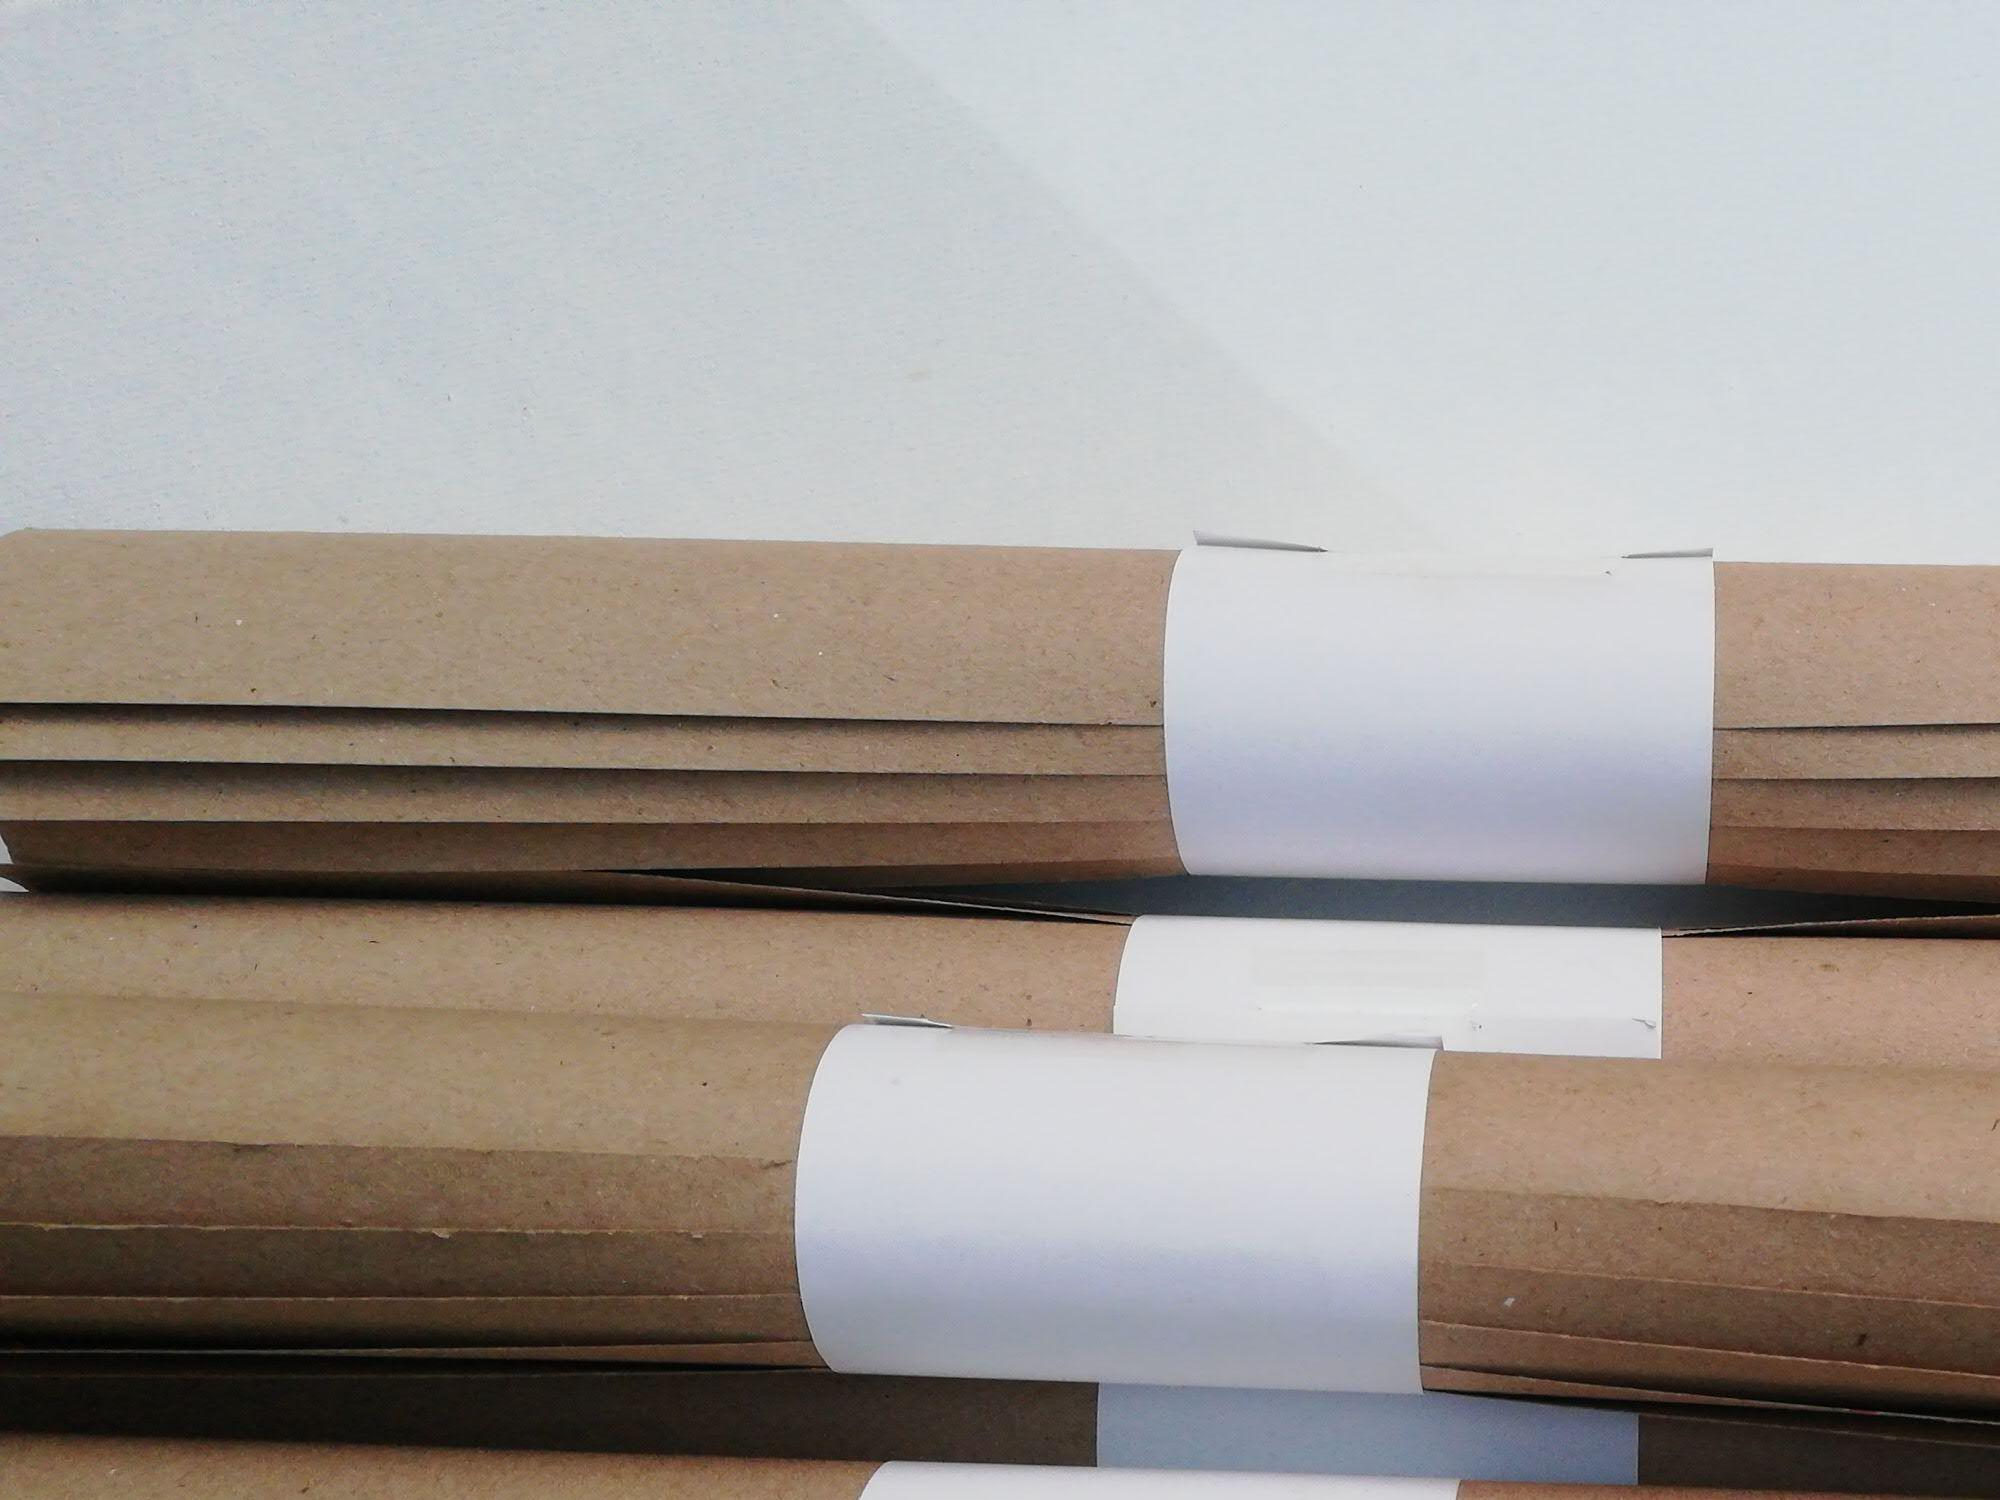 Samutsari Kraft Paper Large Sheet - 5 Pcs/roll (size: 13x19 Inches) By Samutsari .